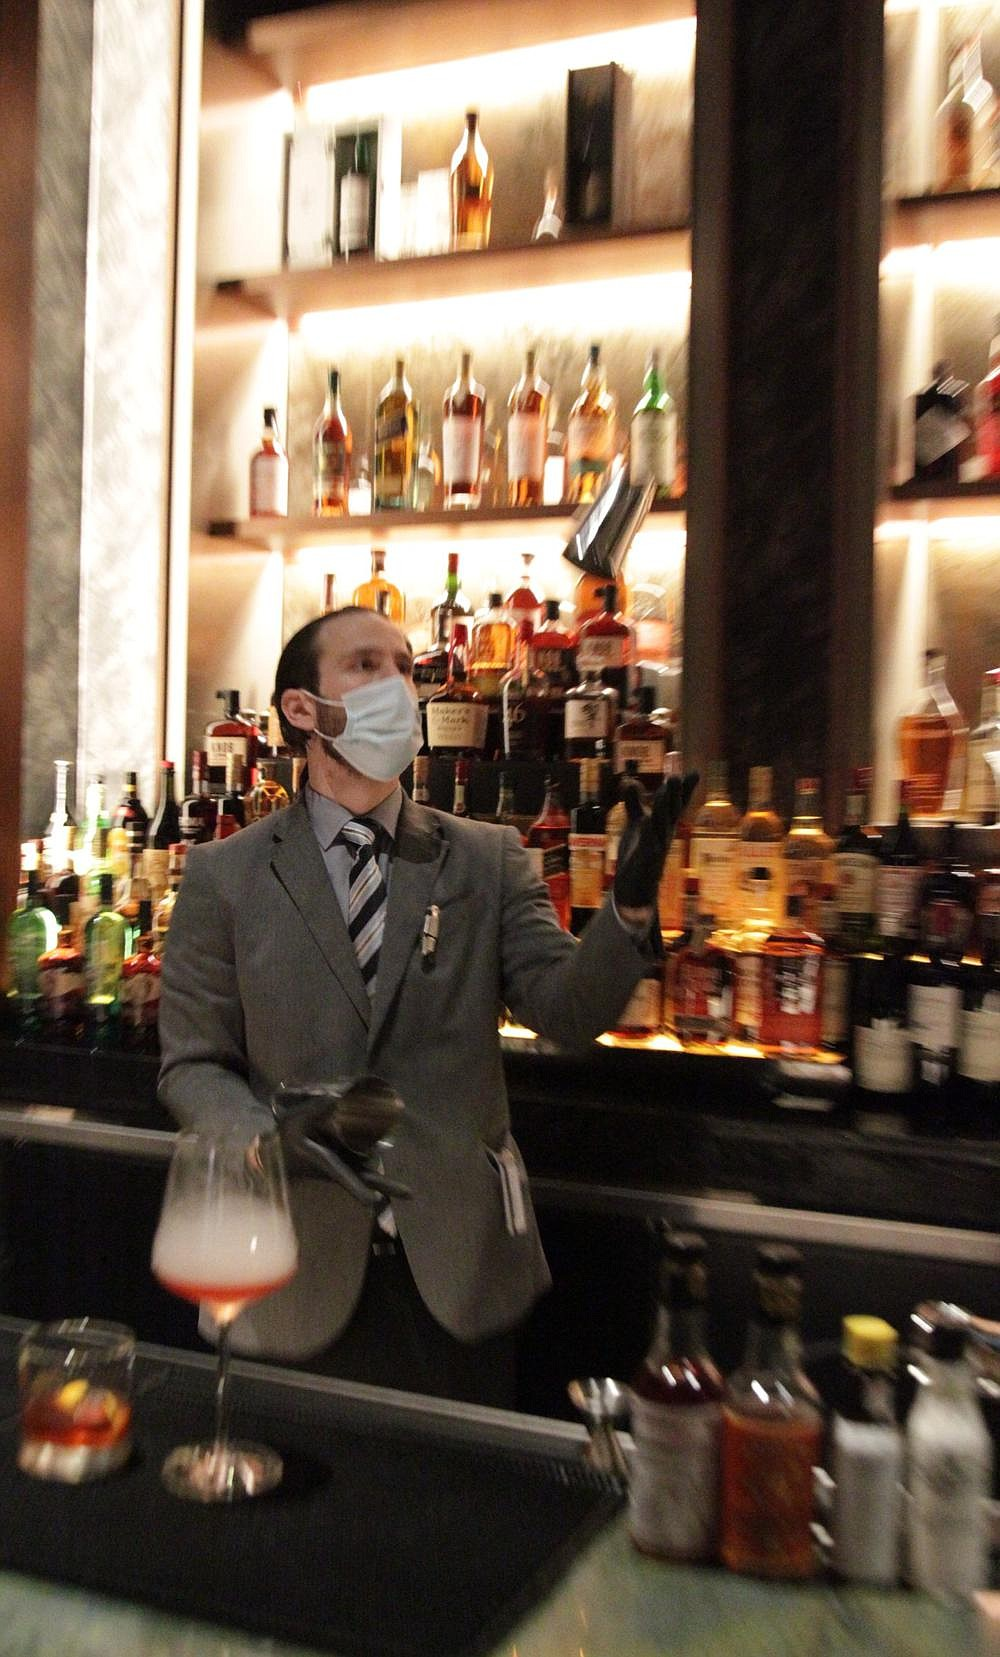 Mark Lopez, Red Oak Steakhouse sommelier, demonstrates his prowess behind the bar as he prepares drinks Friday afternoon. Food and bar service will close nightly at 11 p.m. following a request by the Arkansas Department of Health, but individual drink service to patrons on the casino gambling floor will continue until the casino closes at 2 a.m. 